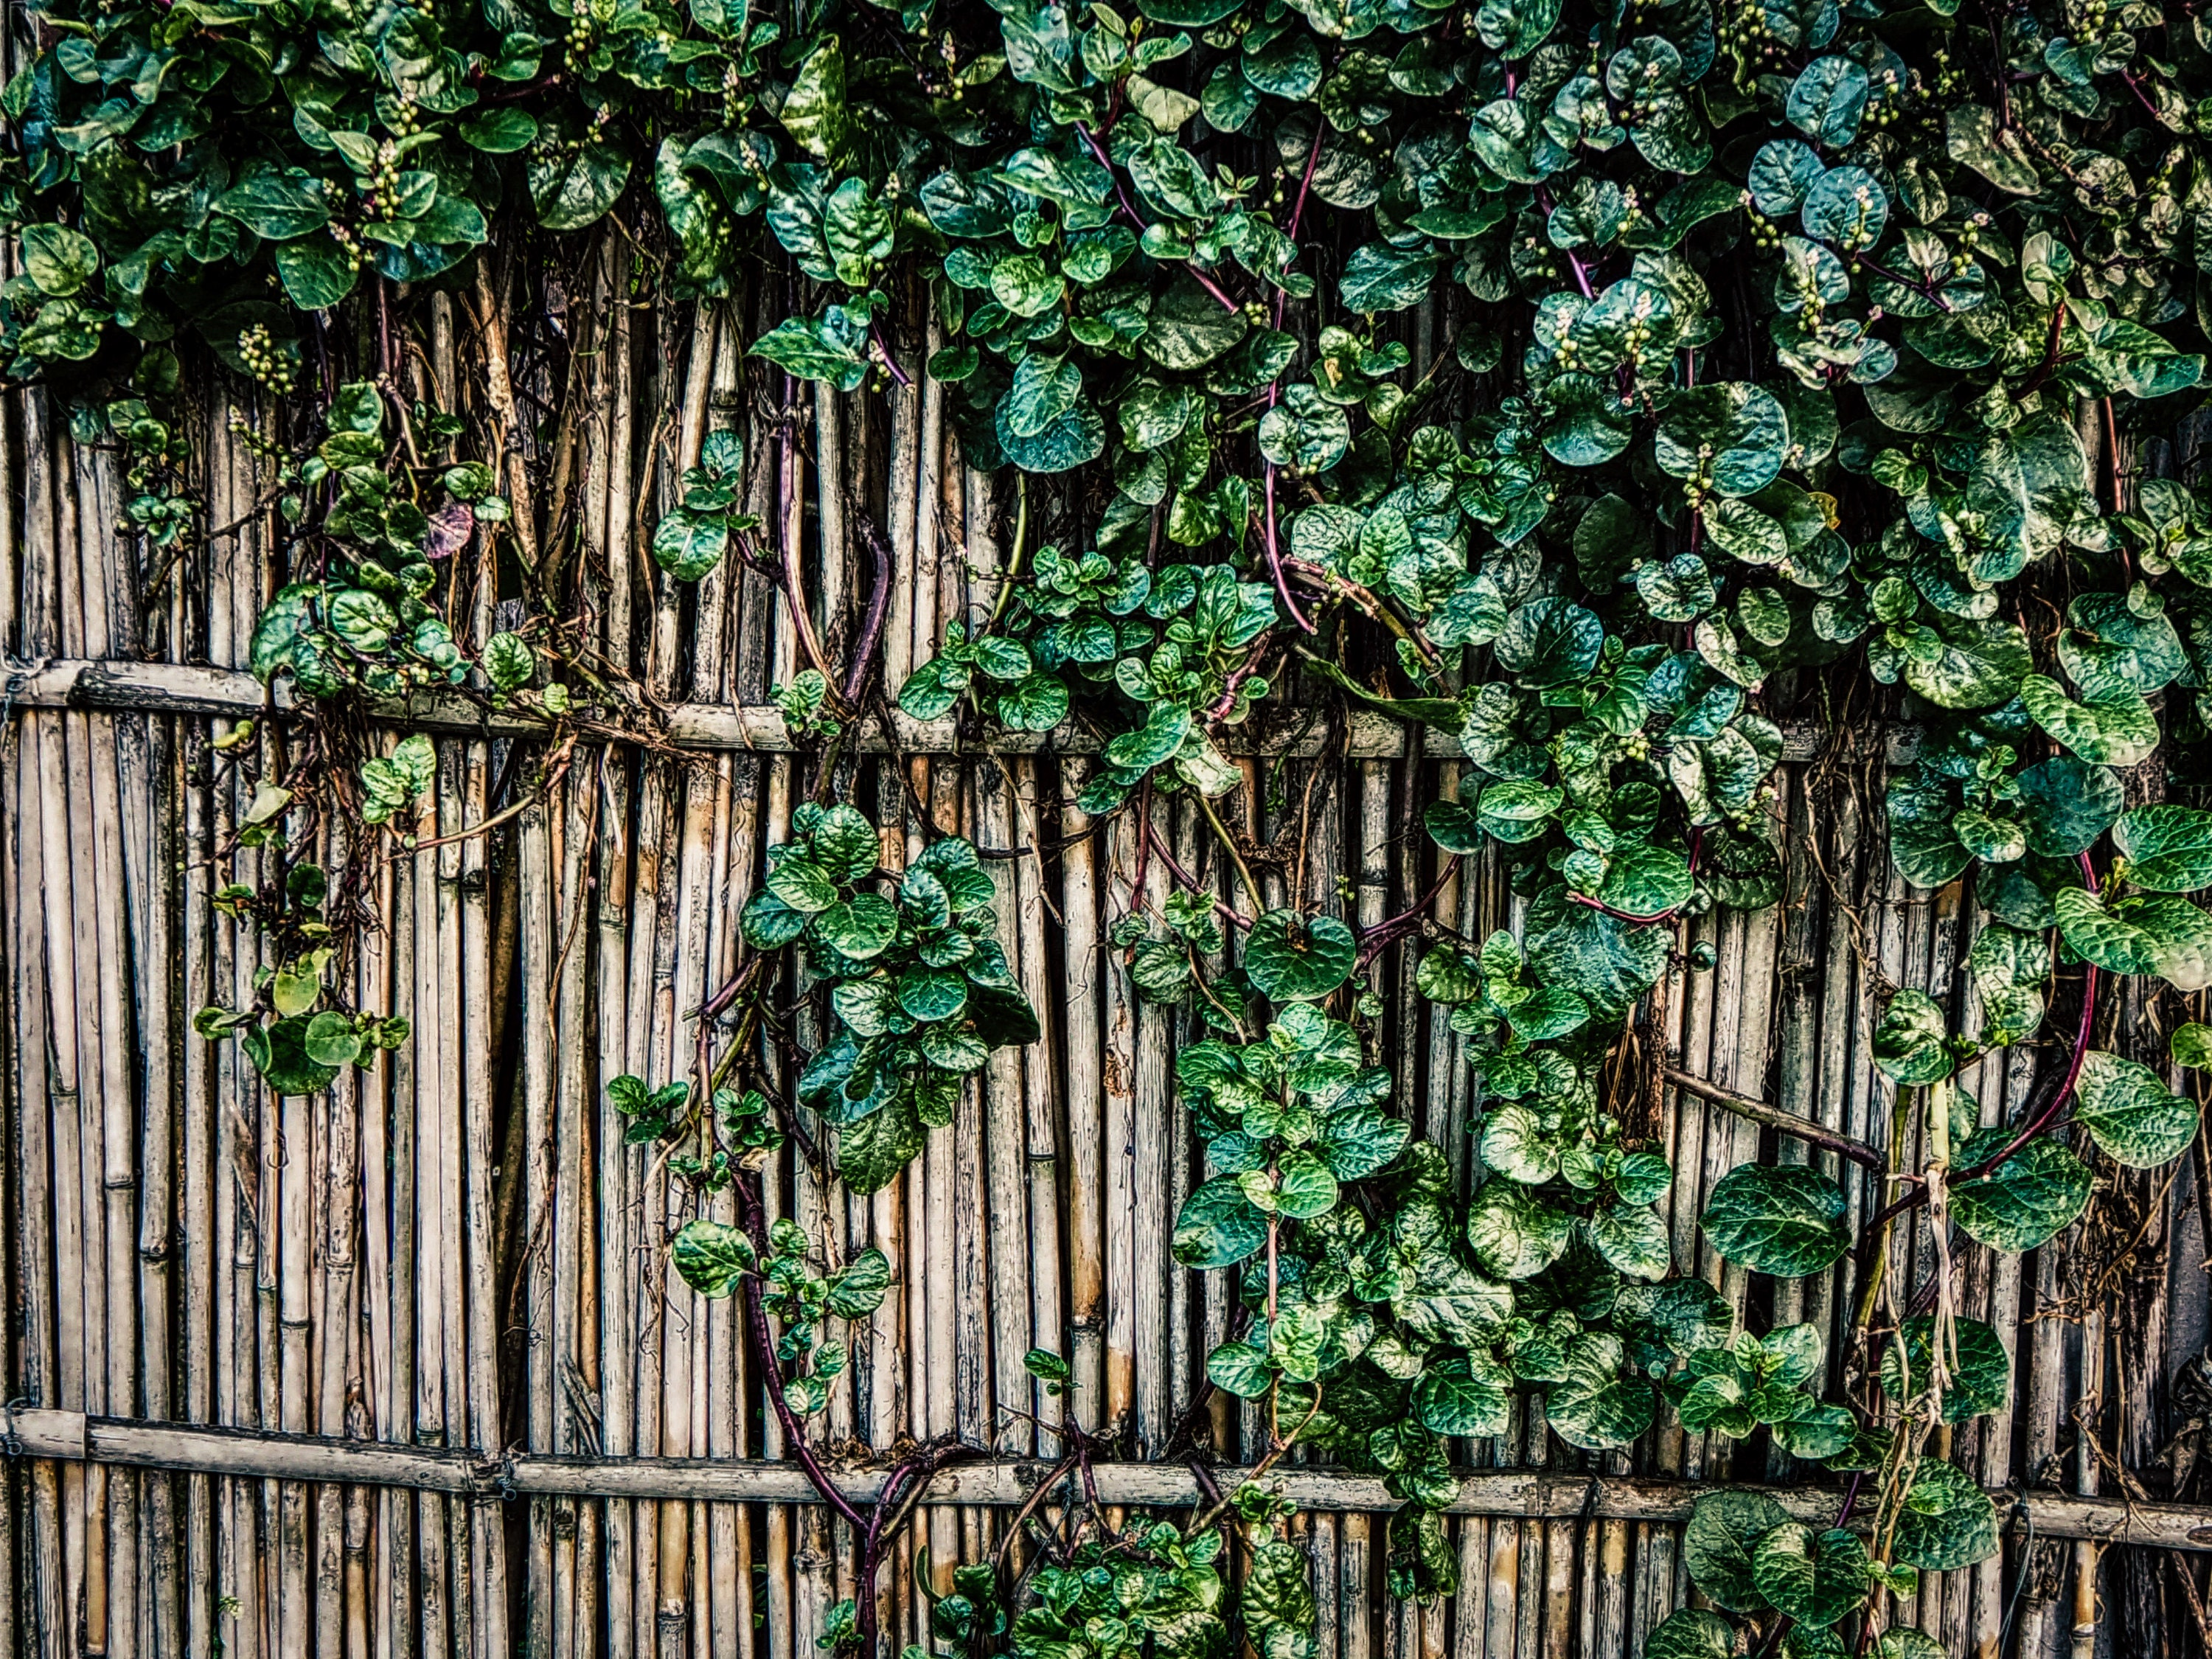 A vine covered bamboo fence